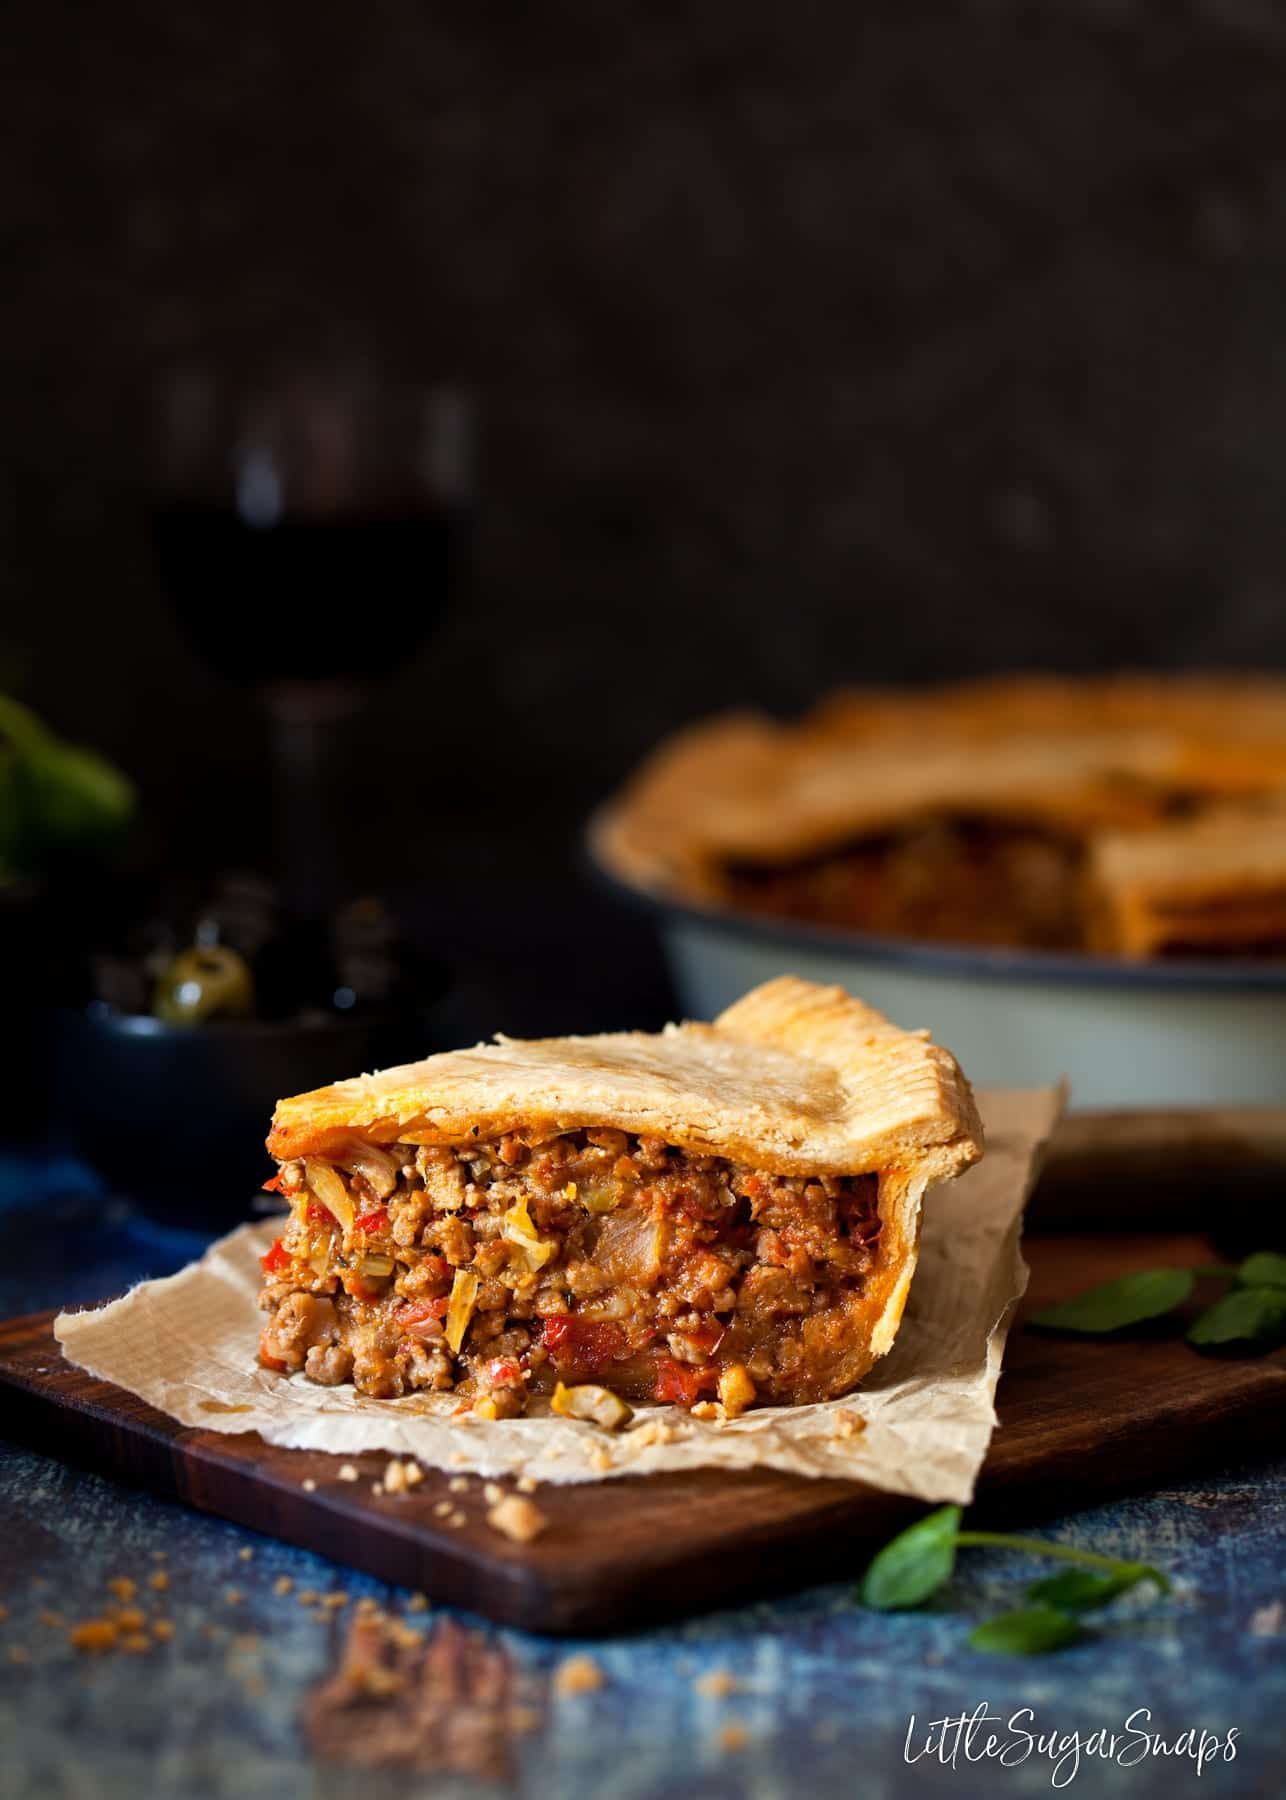 A slice of Mediterranean Lamb Pie on a wooden board.